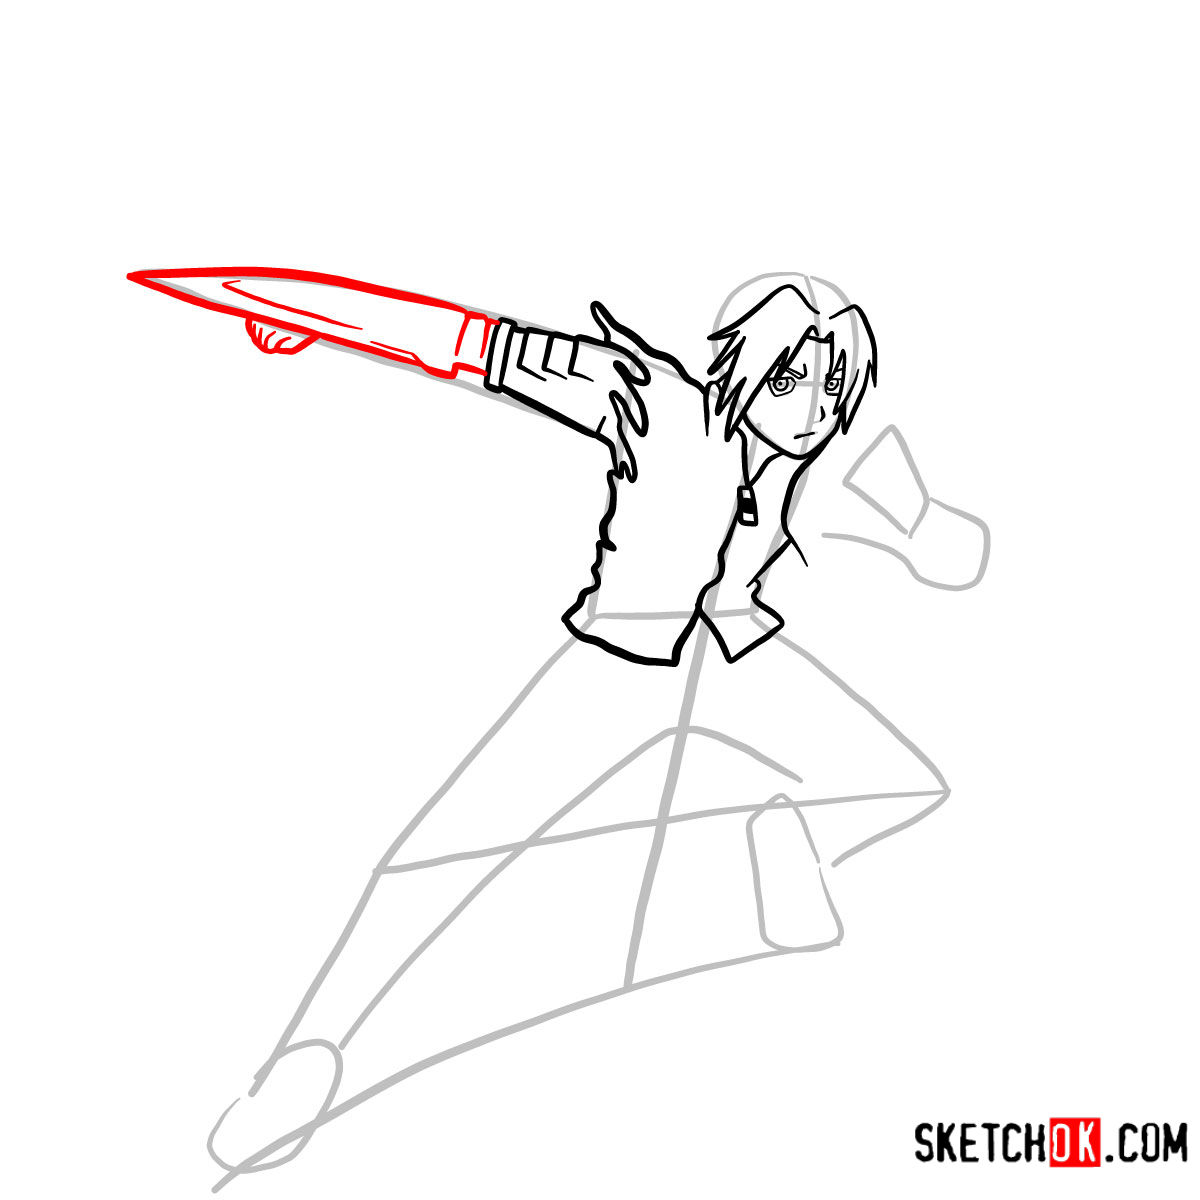 How to draw Edward Elric in a fight | Fullmetal Alchemist - step 07